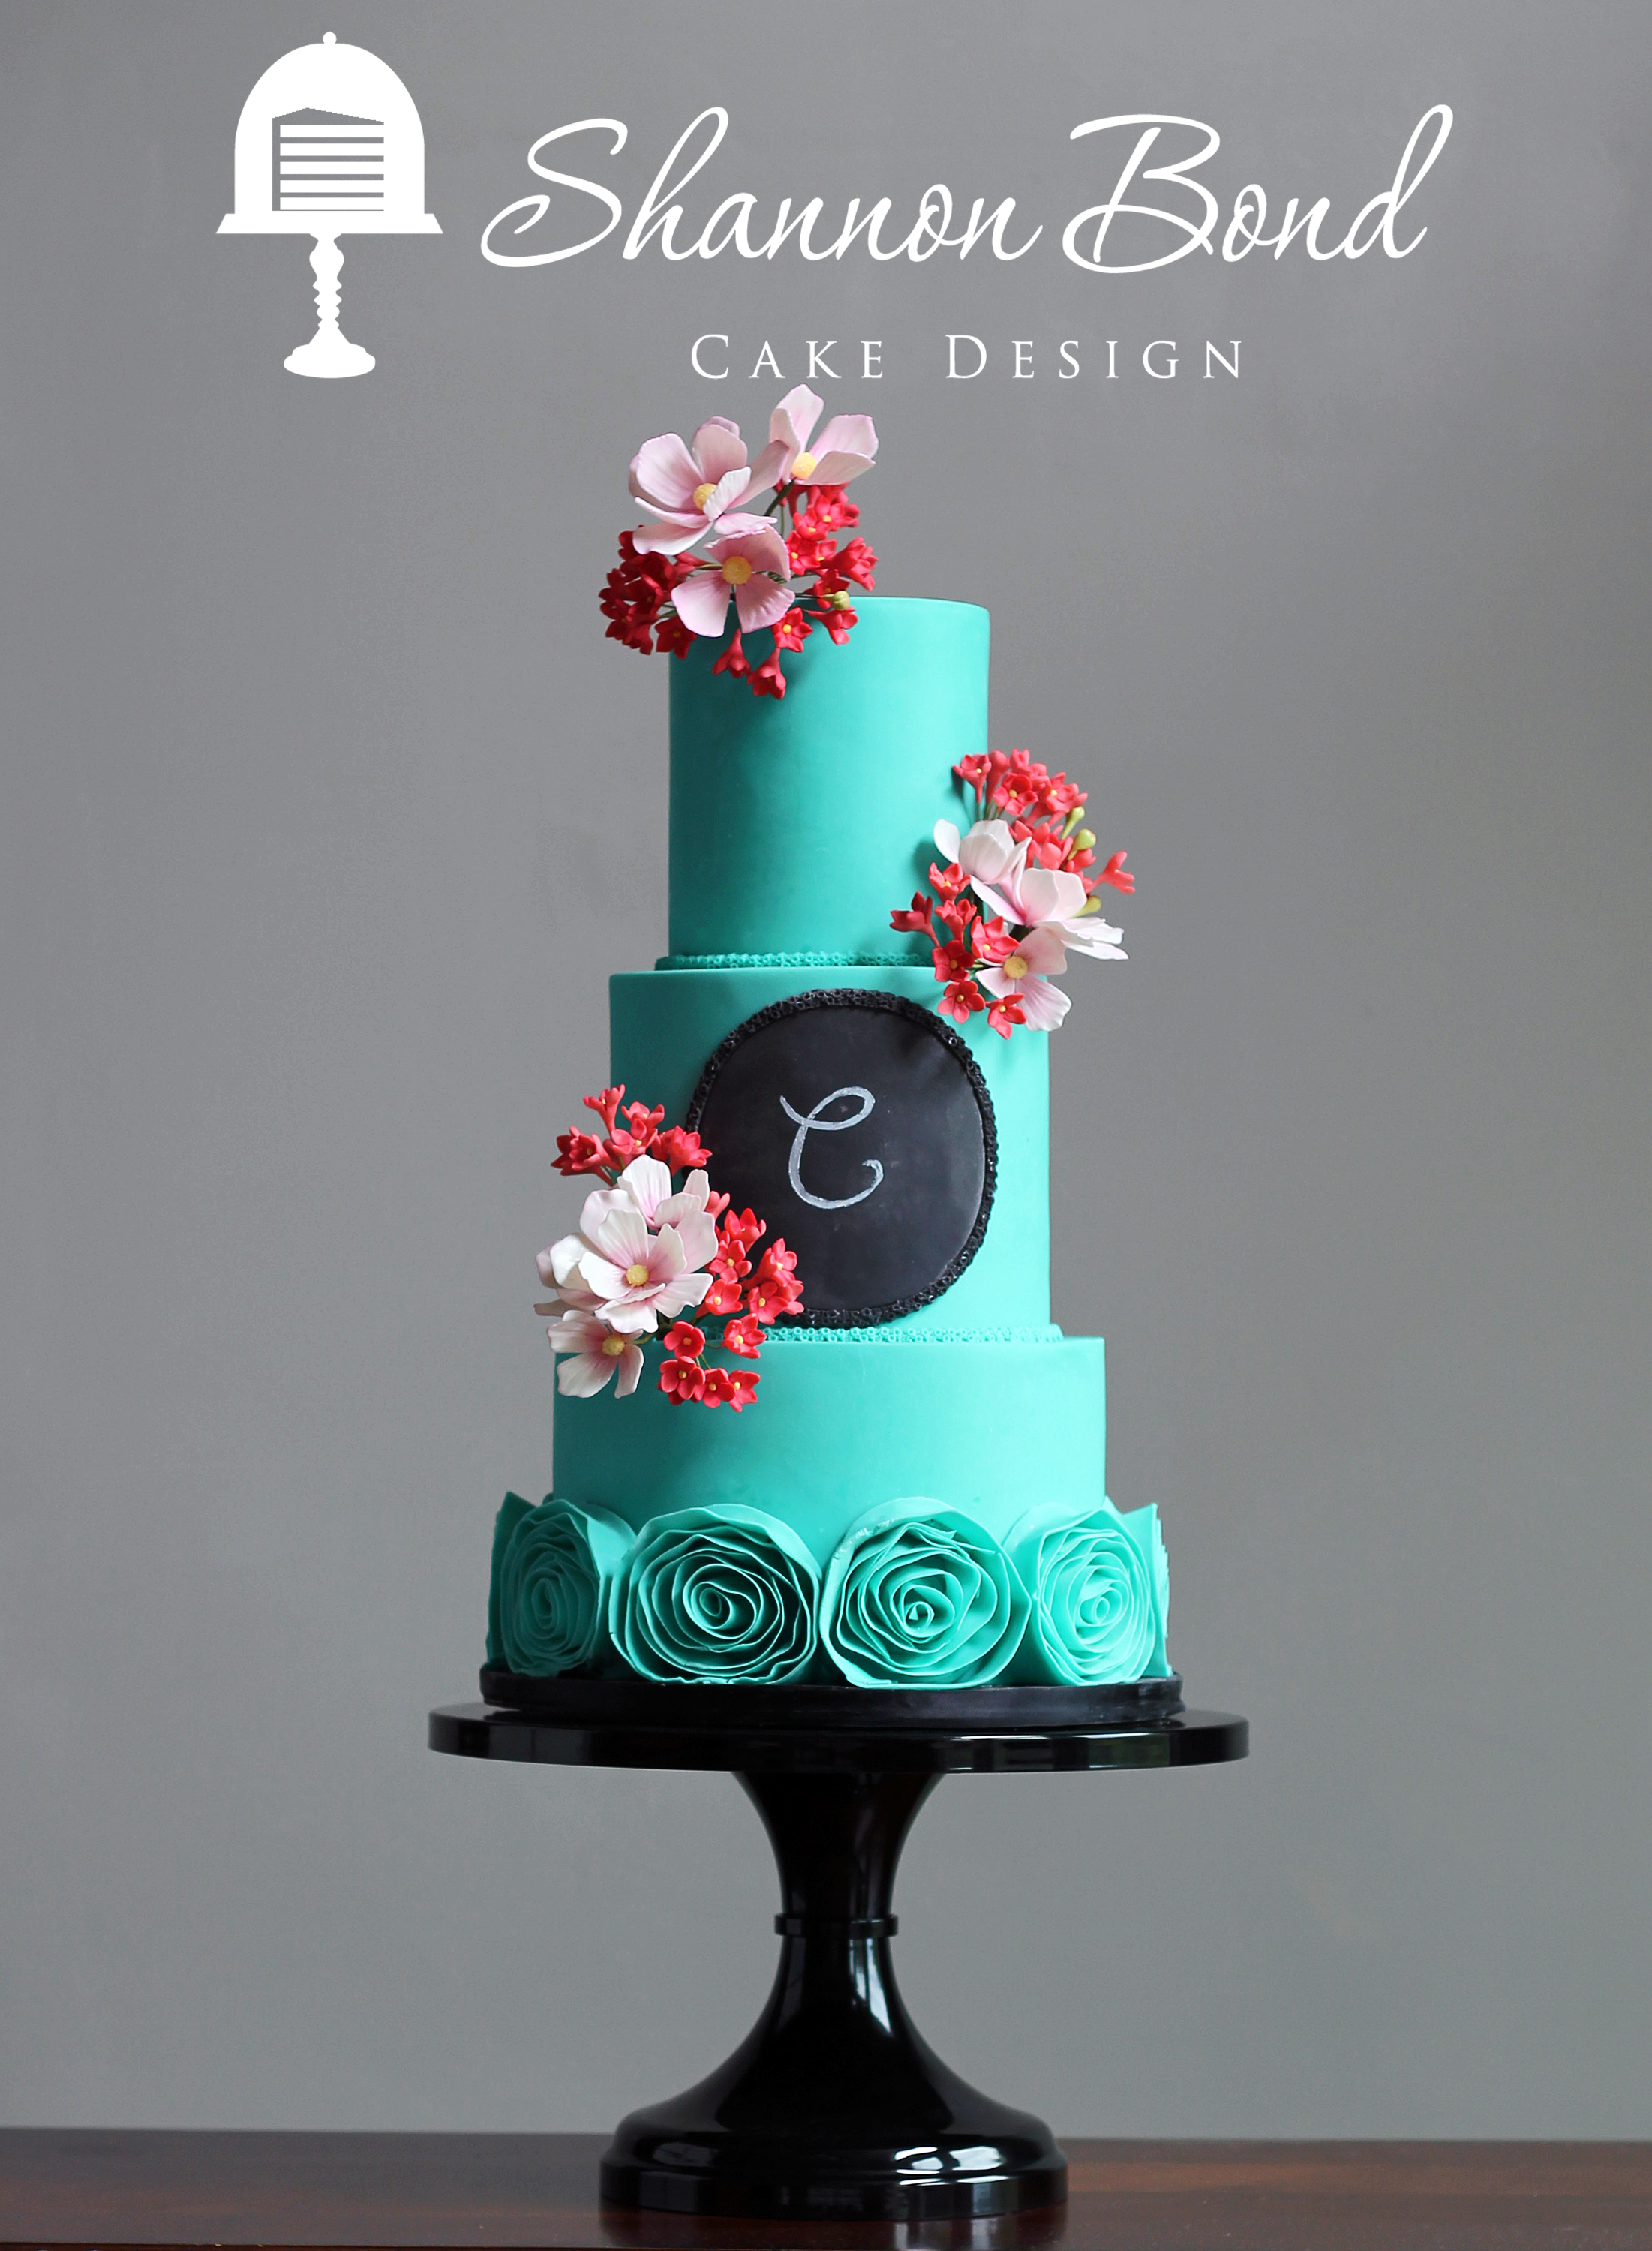 All Turquoise and black fondant wedding cake